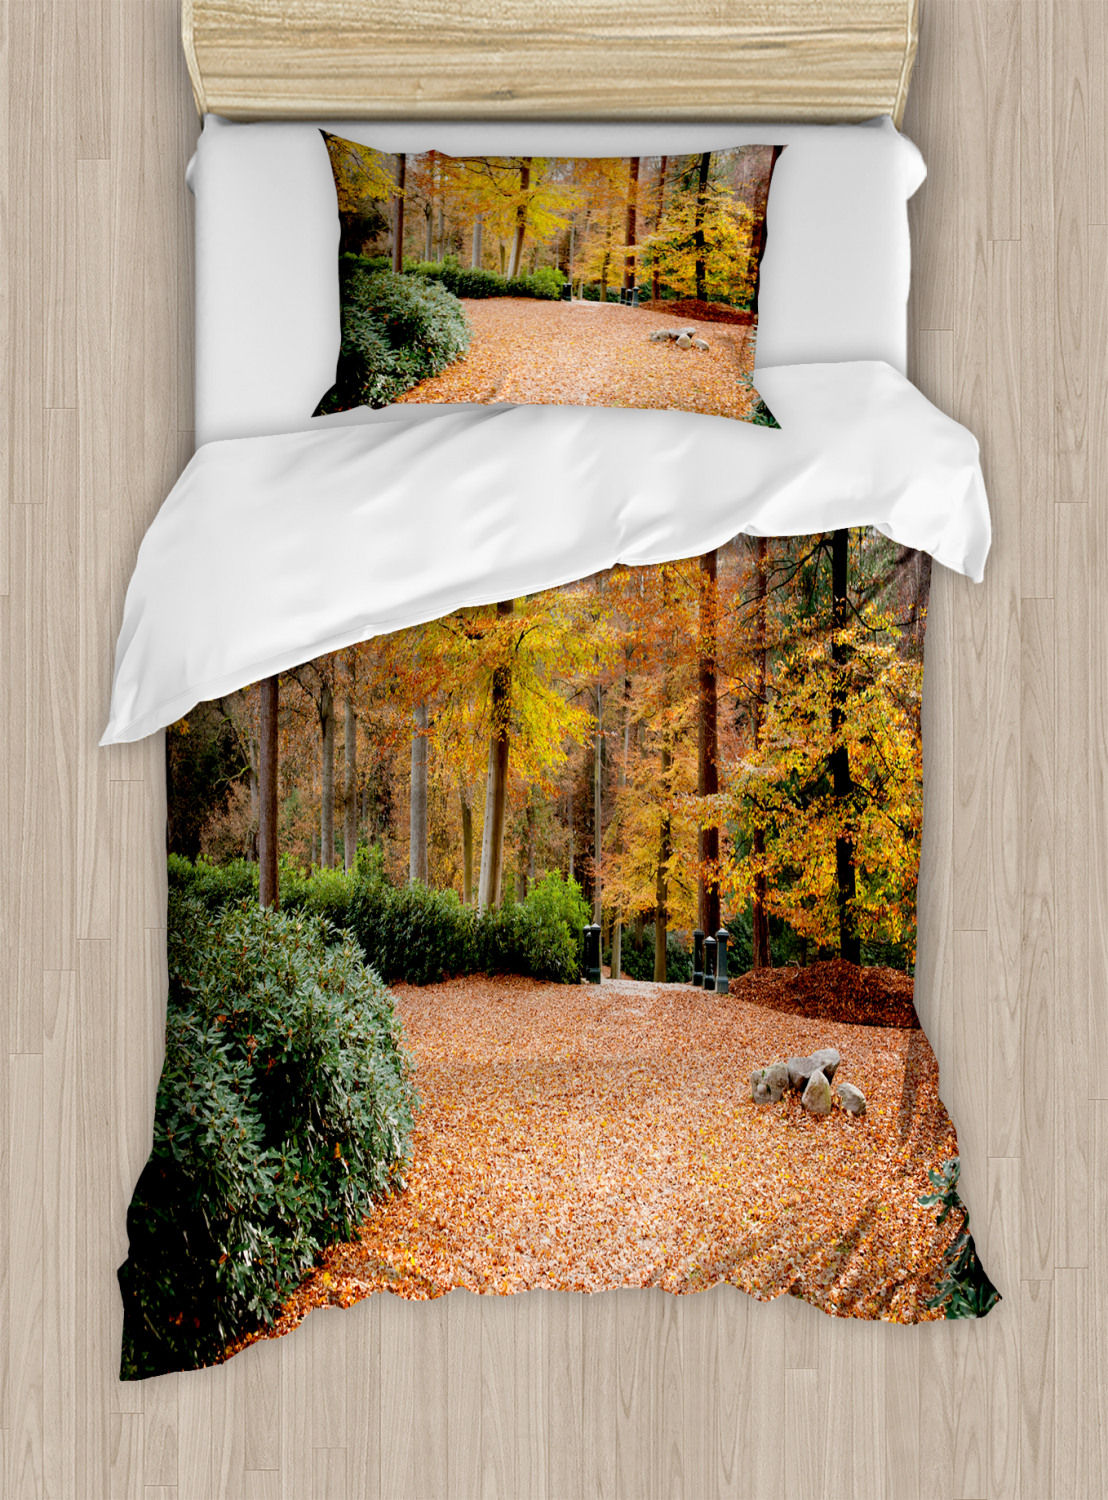 Nature Duvet Cover Set with Pillow Shams Autumn Forest Trees Fall Print | eBay